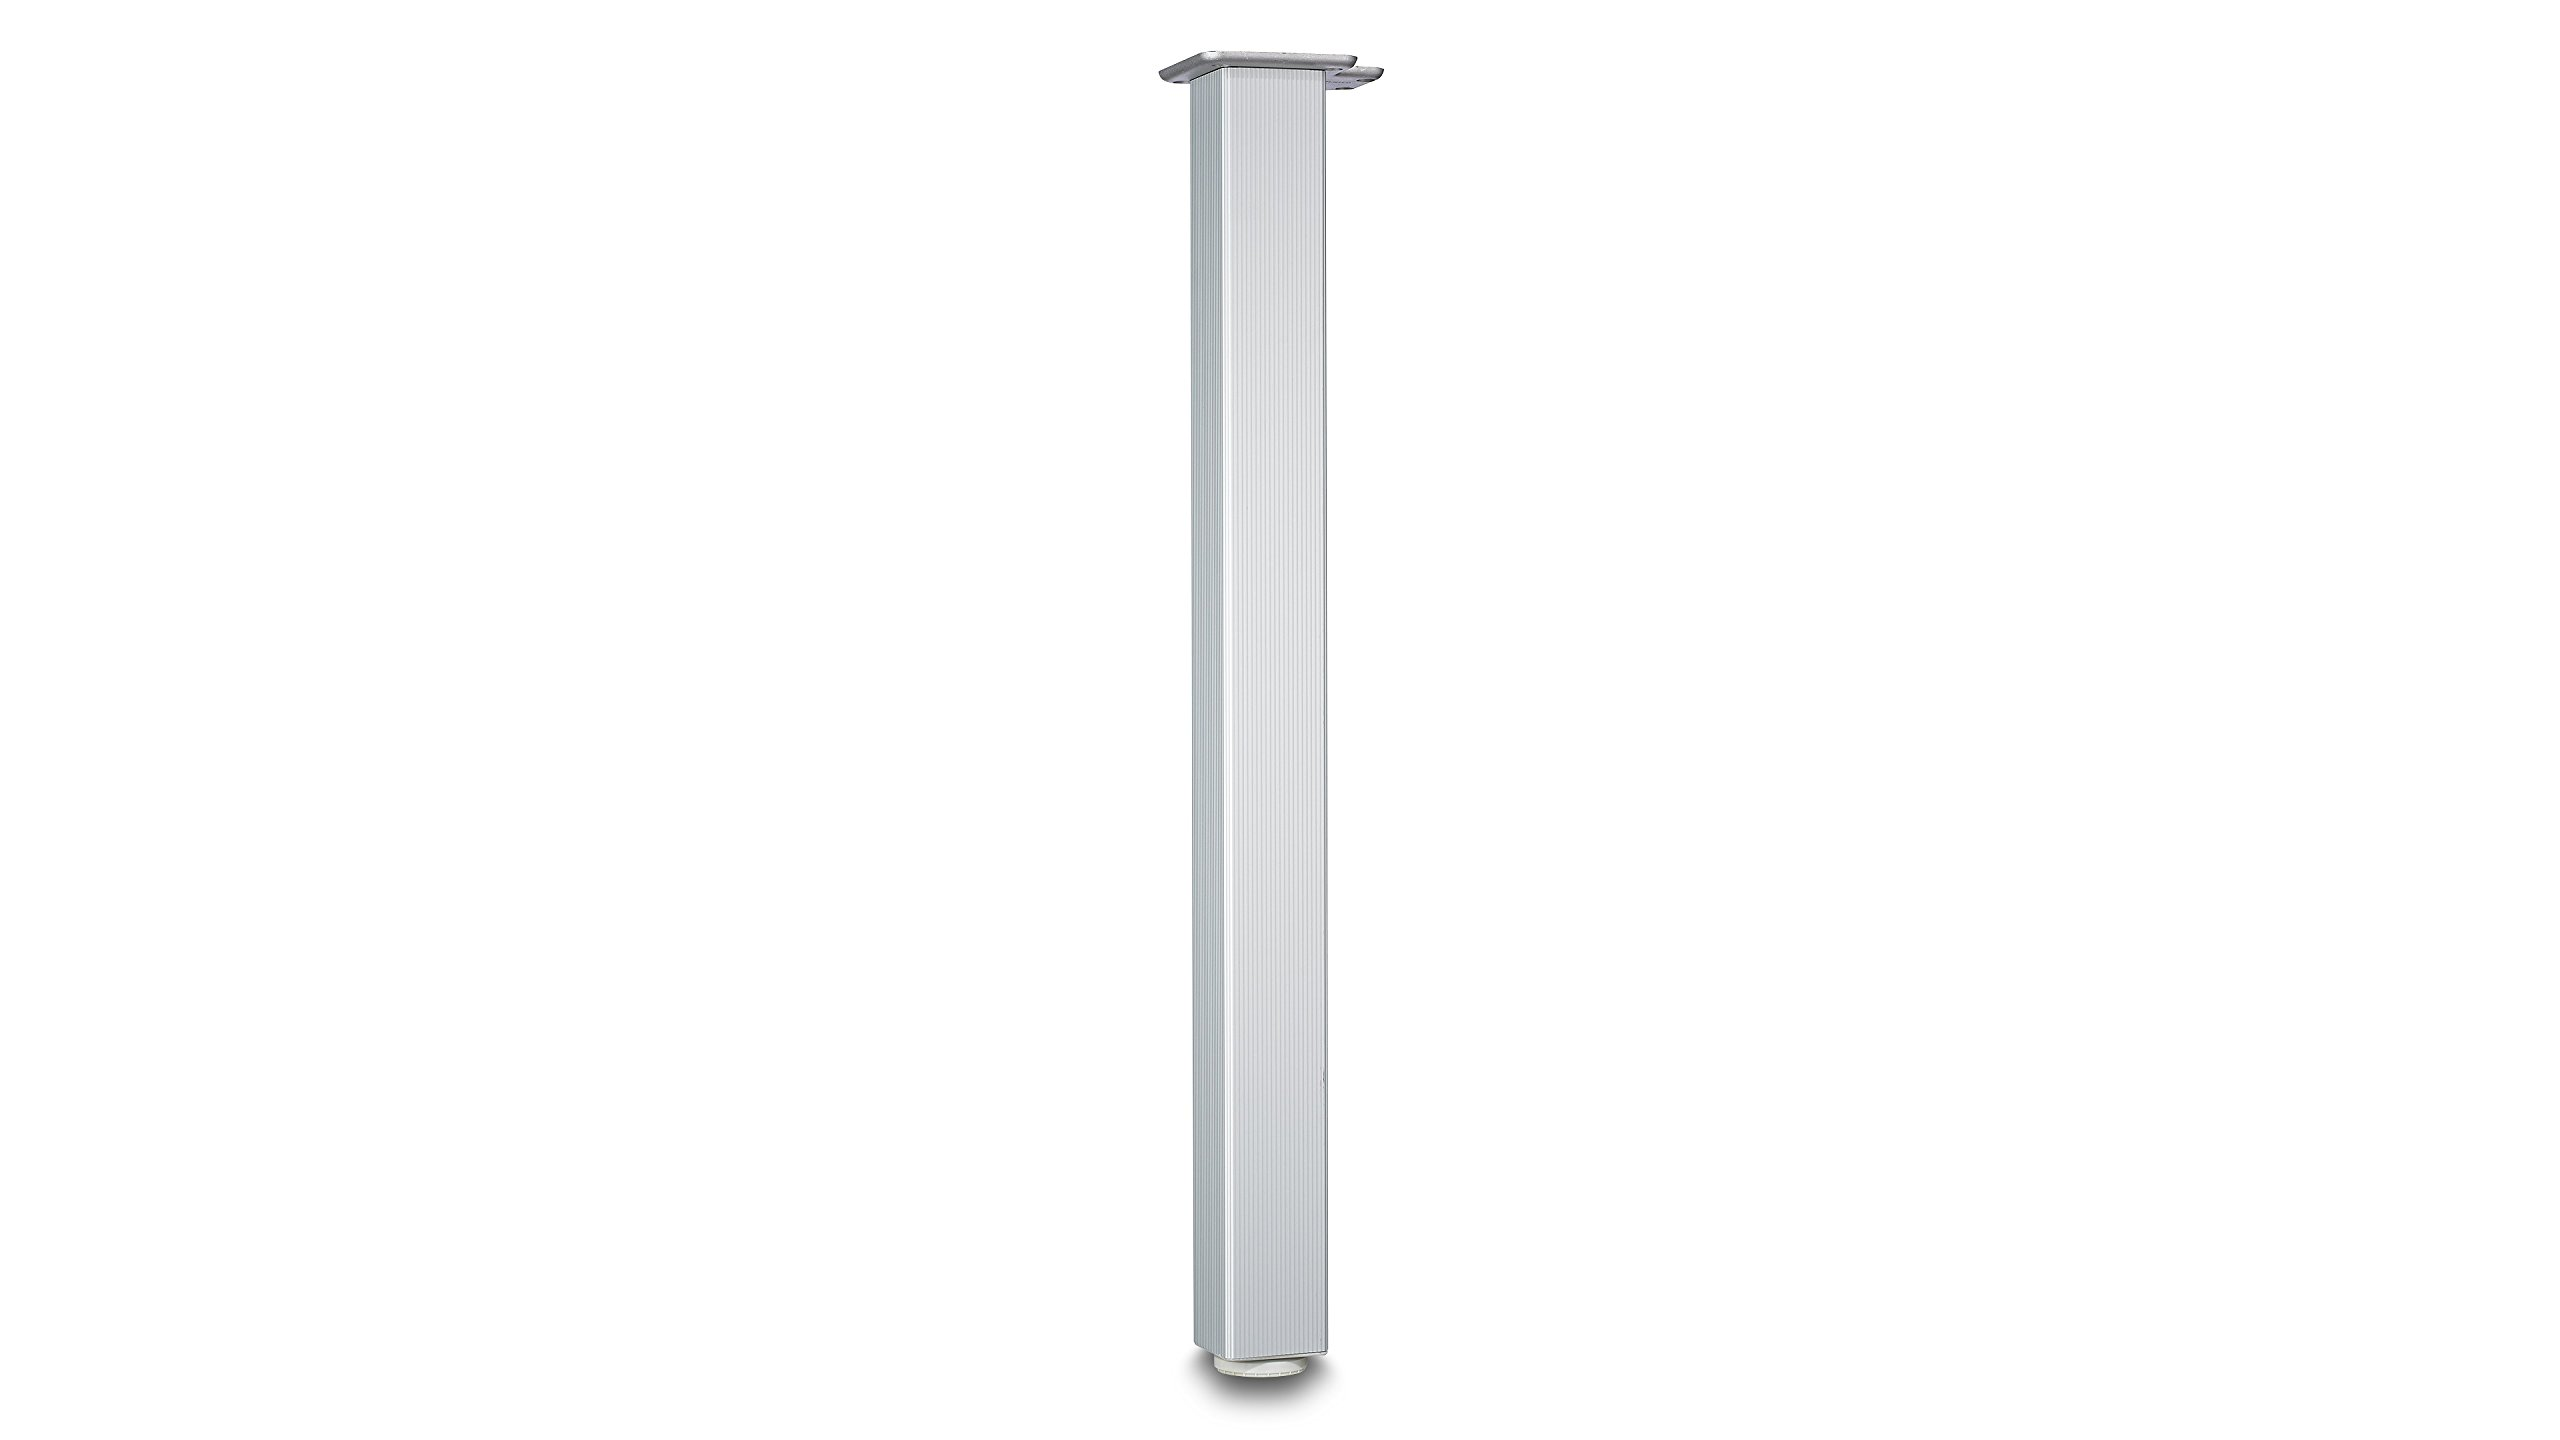 Richelieu Hardware - 64671010 - Box of 4 - Height: 710 mm (28'') - Design Table Leg - 6467 - 28 in - Aluminum  Finish